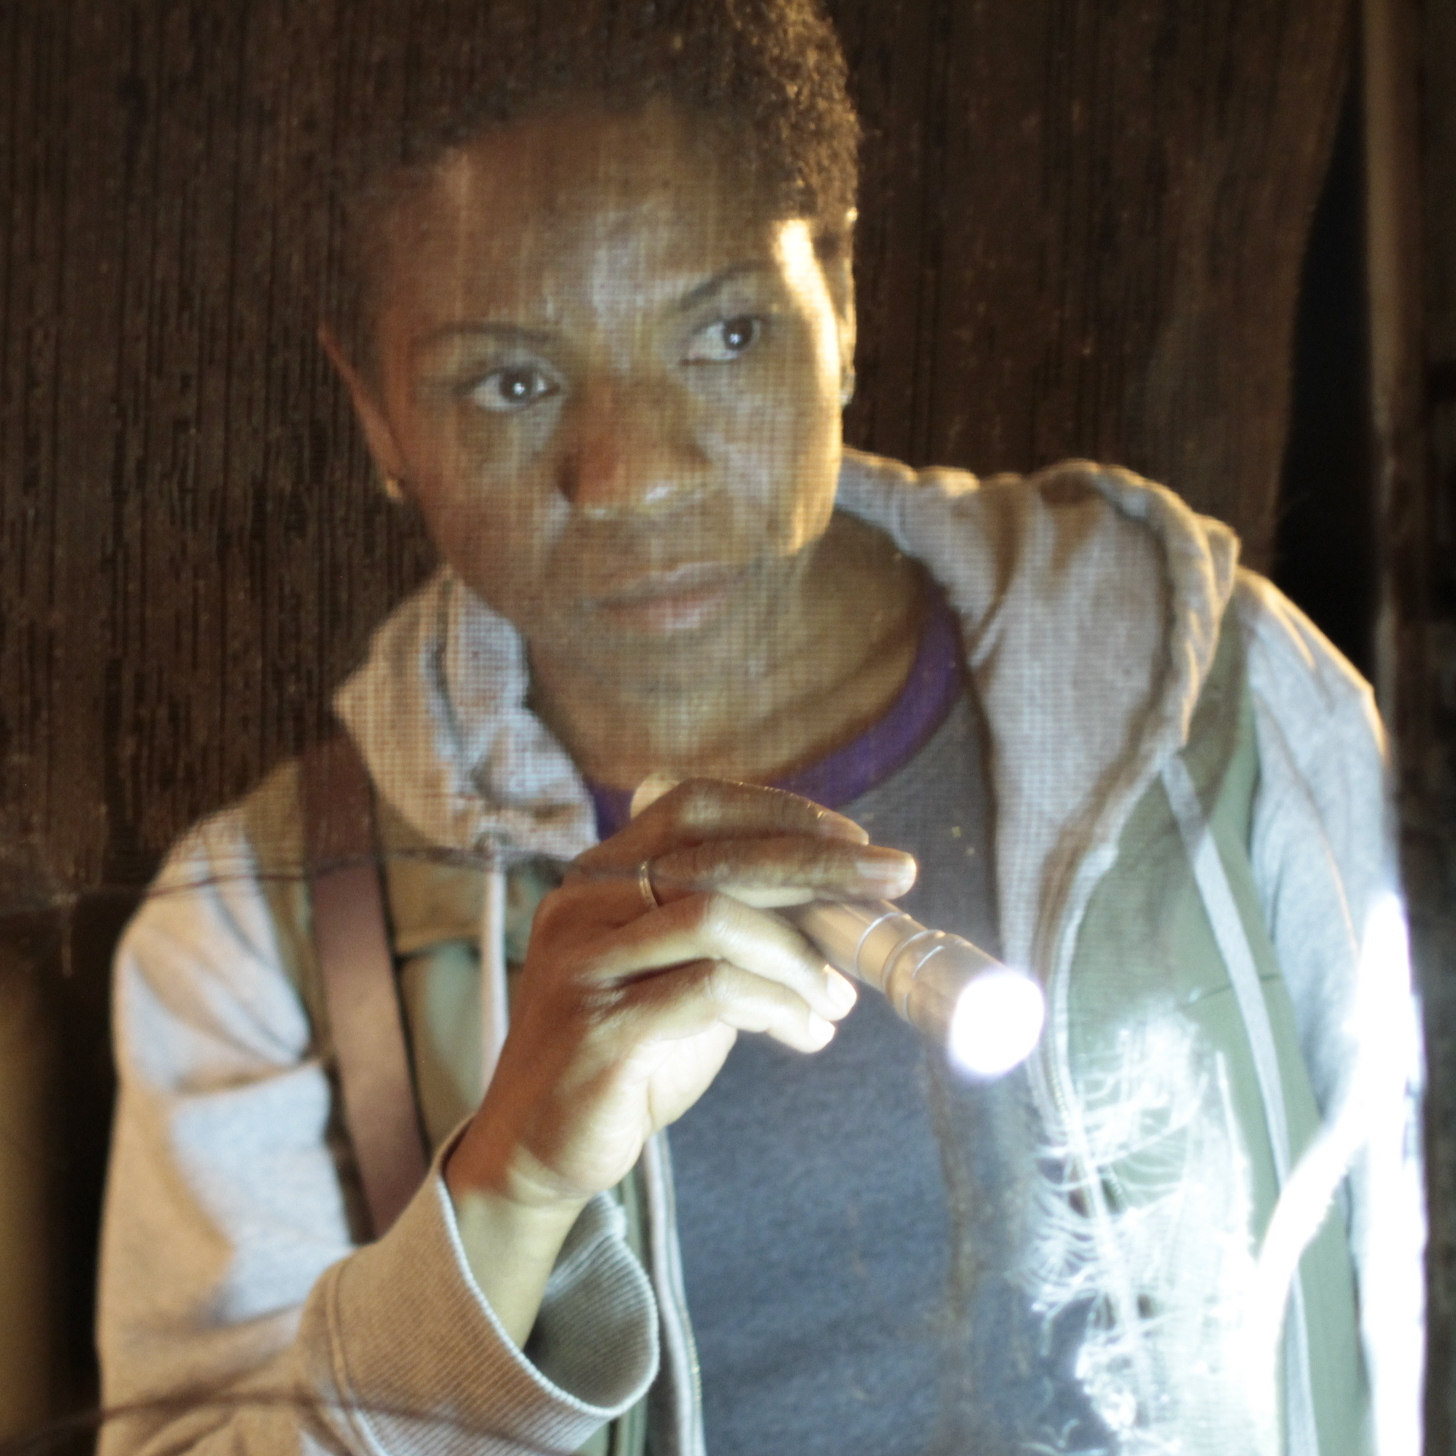 The relationship between Bernice (LisaGay Hamilton, above) and her parolee and former friend, Fontayne (Yolonda Ross), is overshadowed by the movie's criminal storyline.